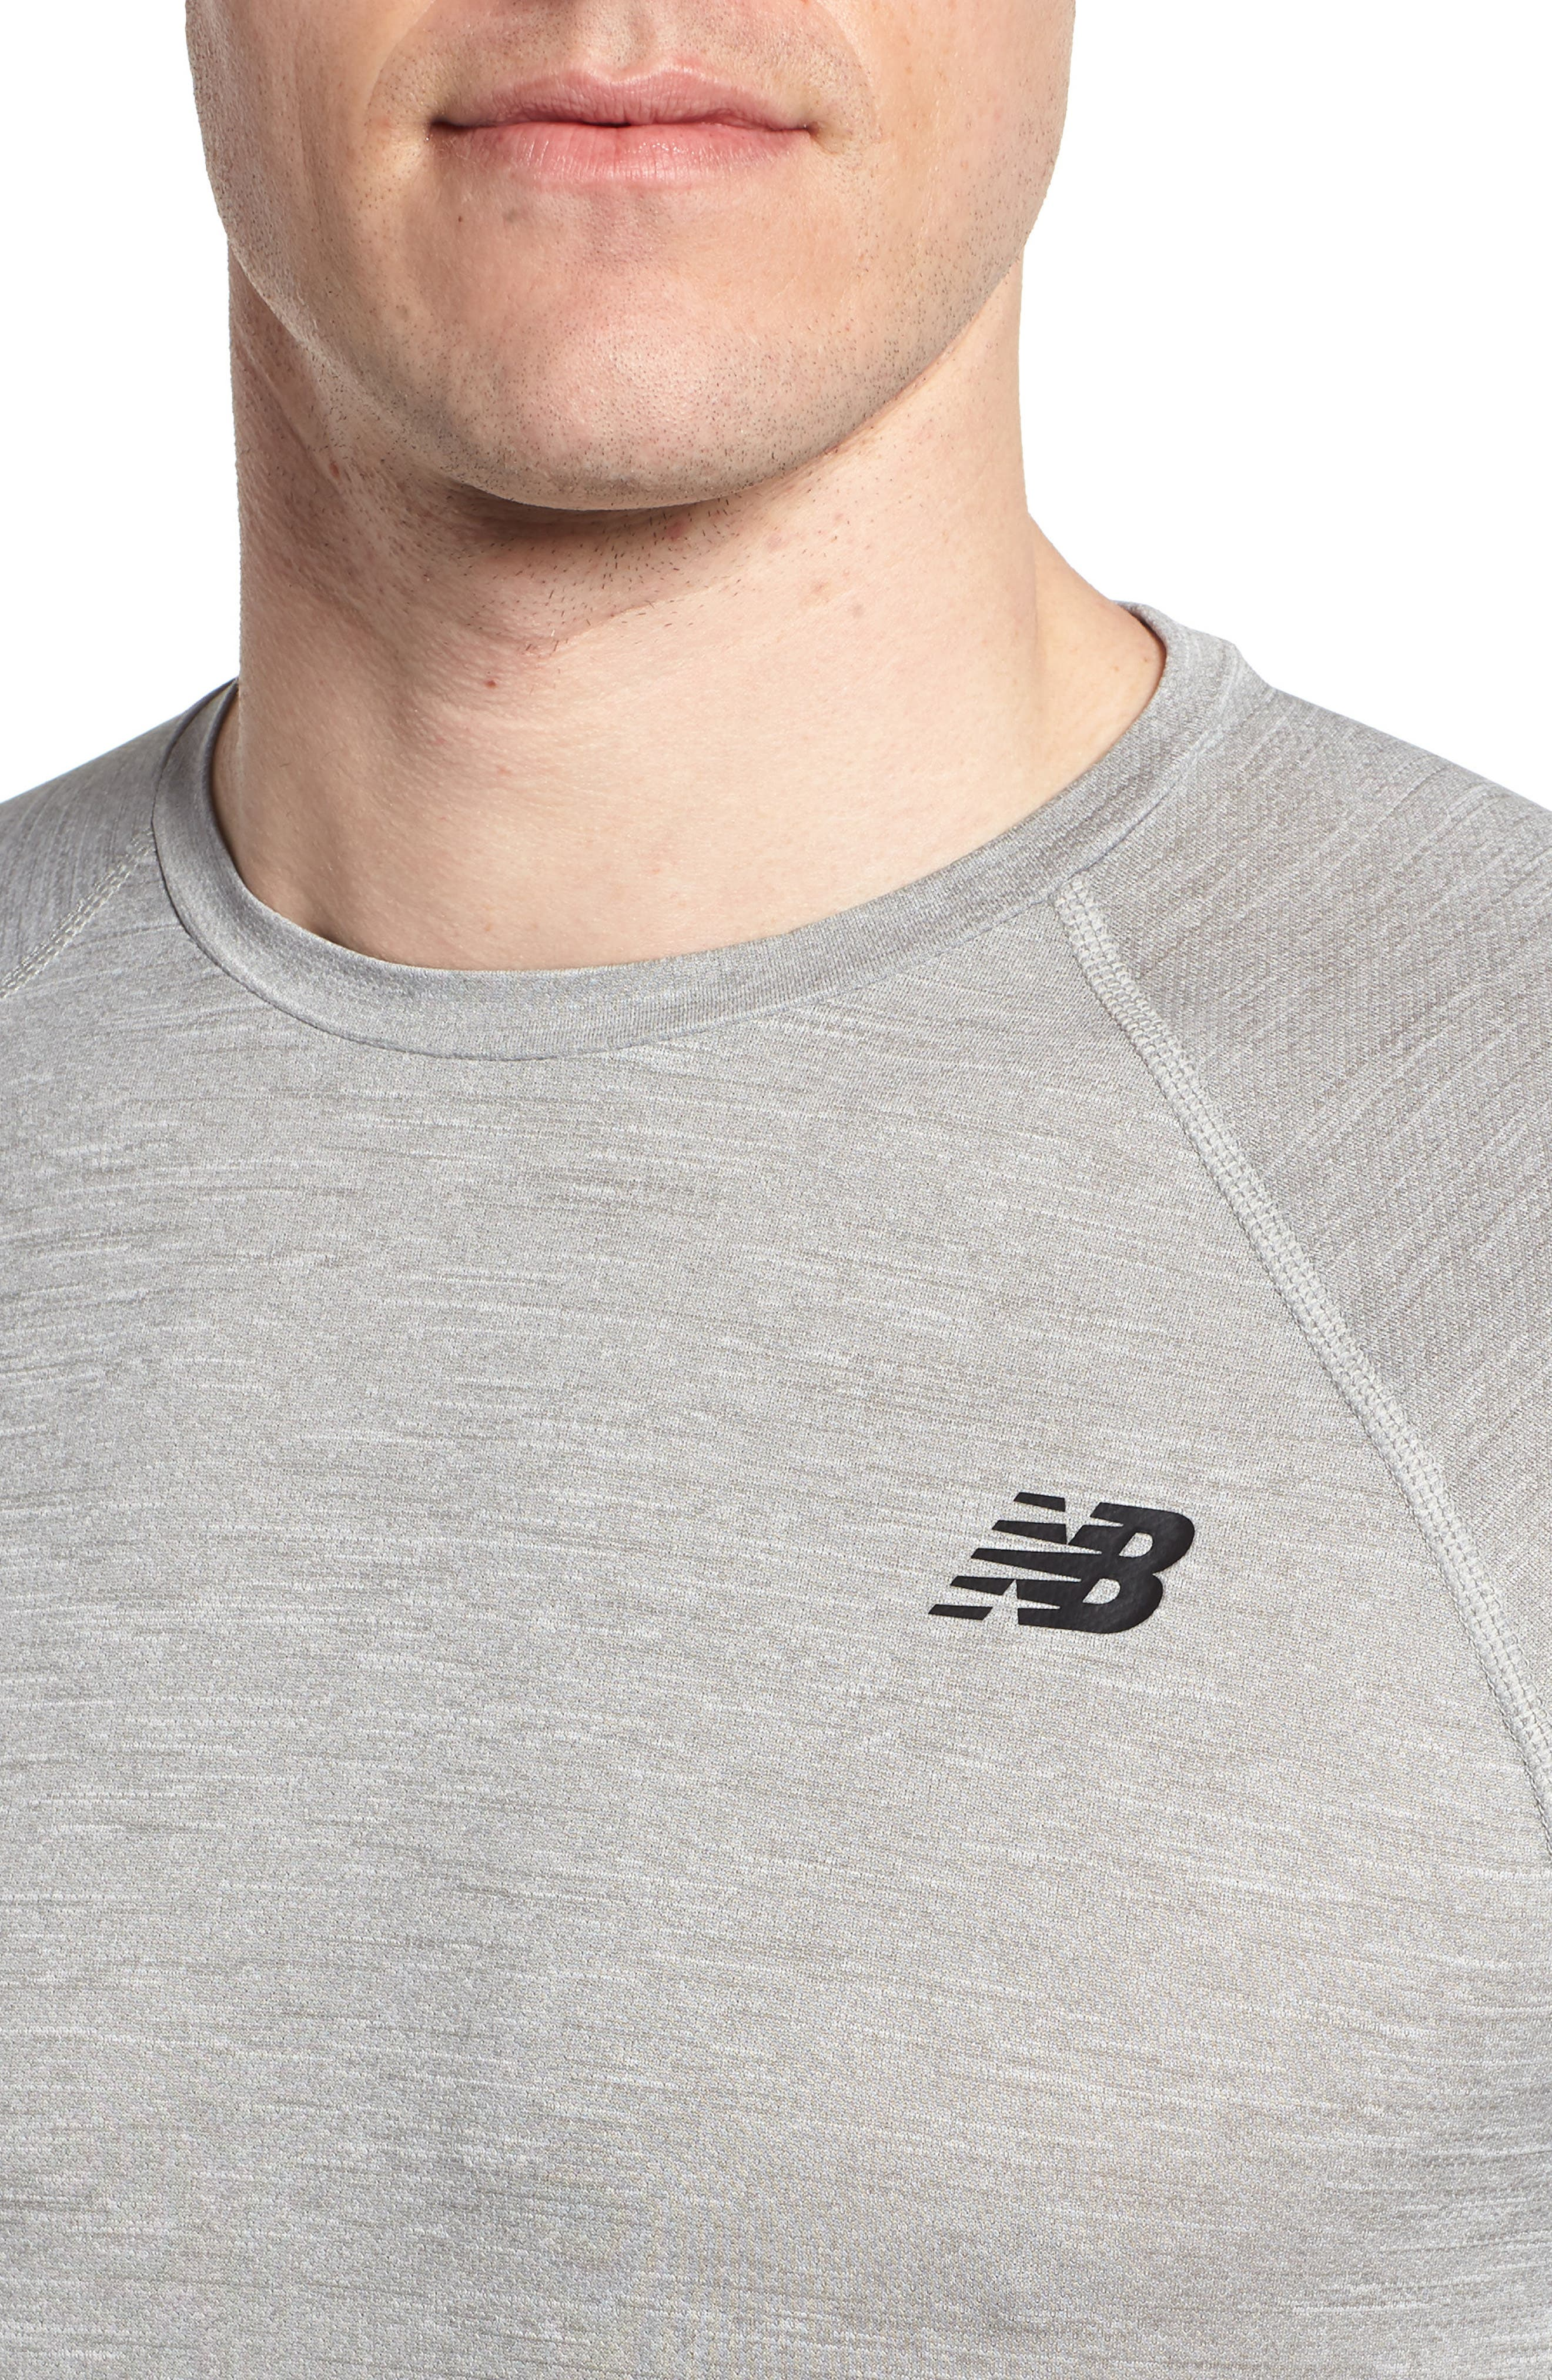 Tenacity Crewneck T-Shirt,                             Alternate thumbnail 4, color,                             ATHLETIC GREY